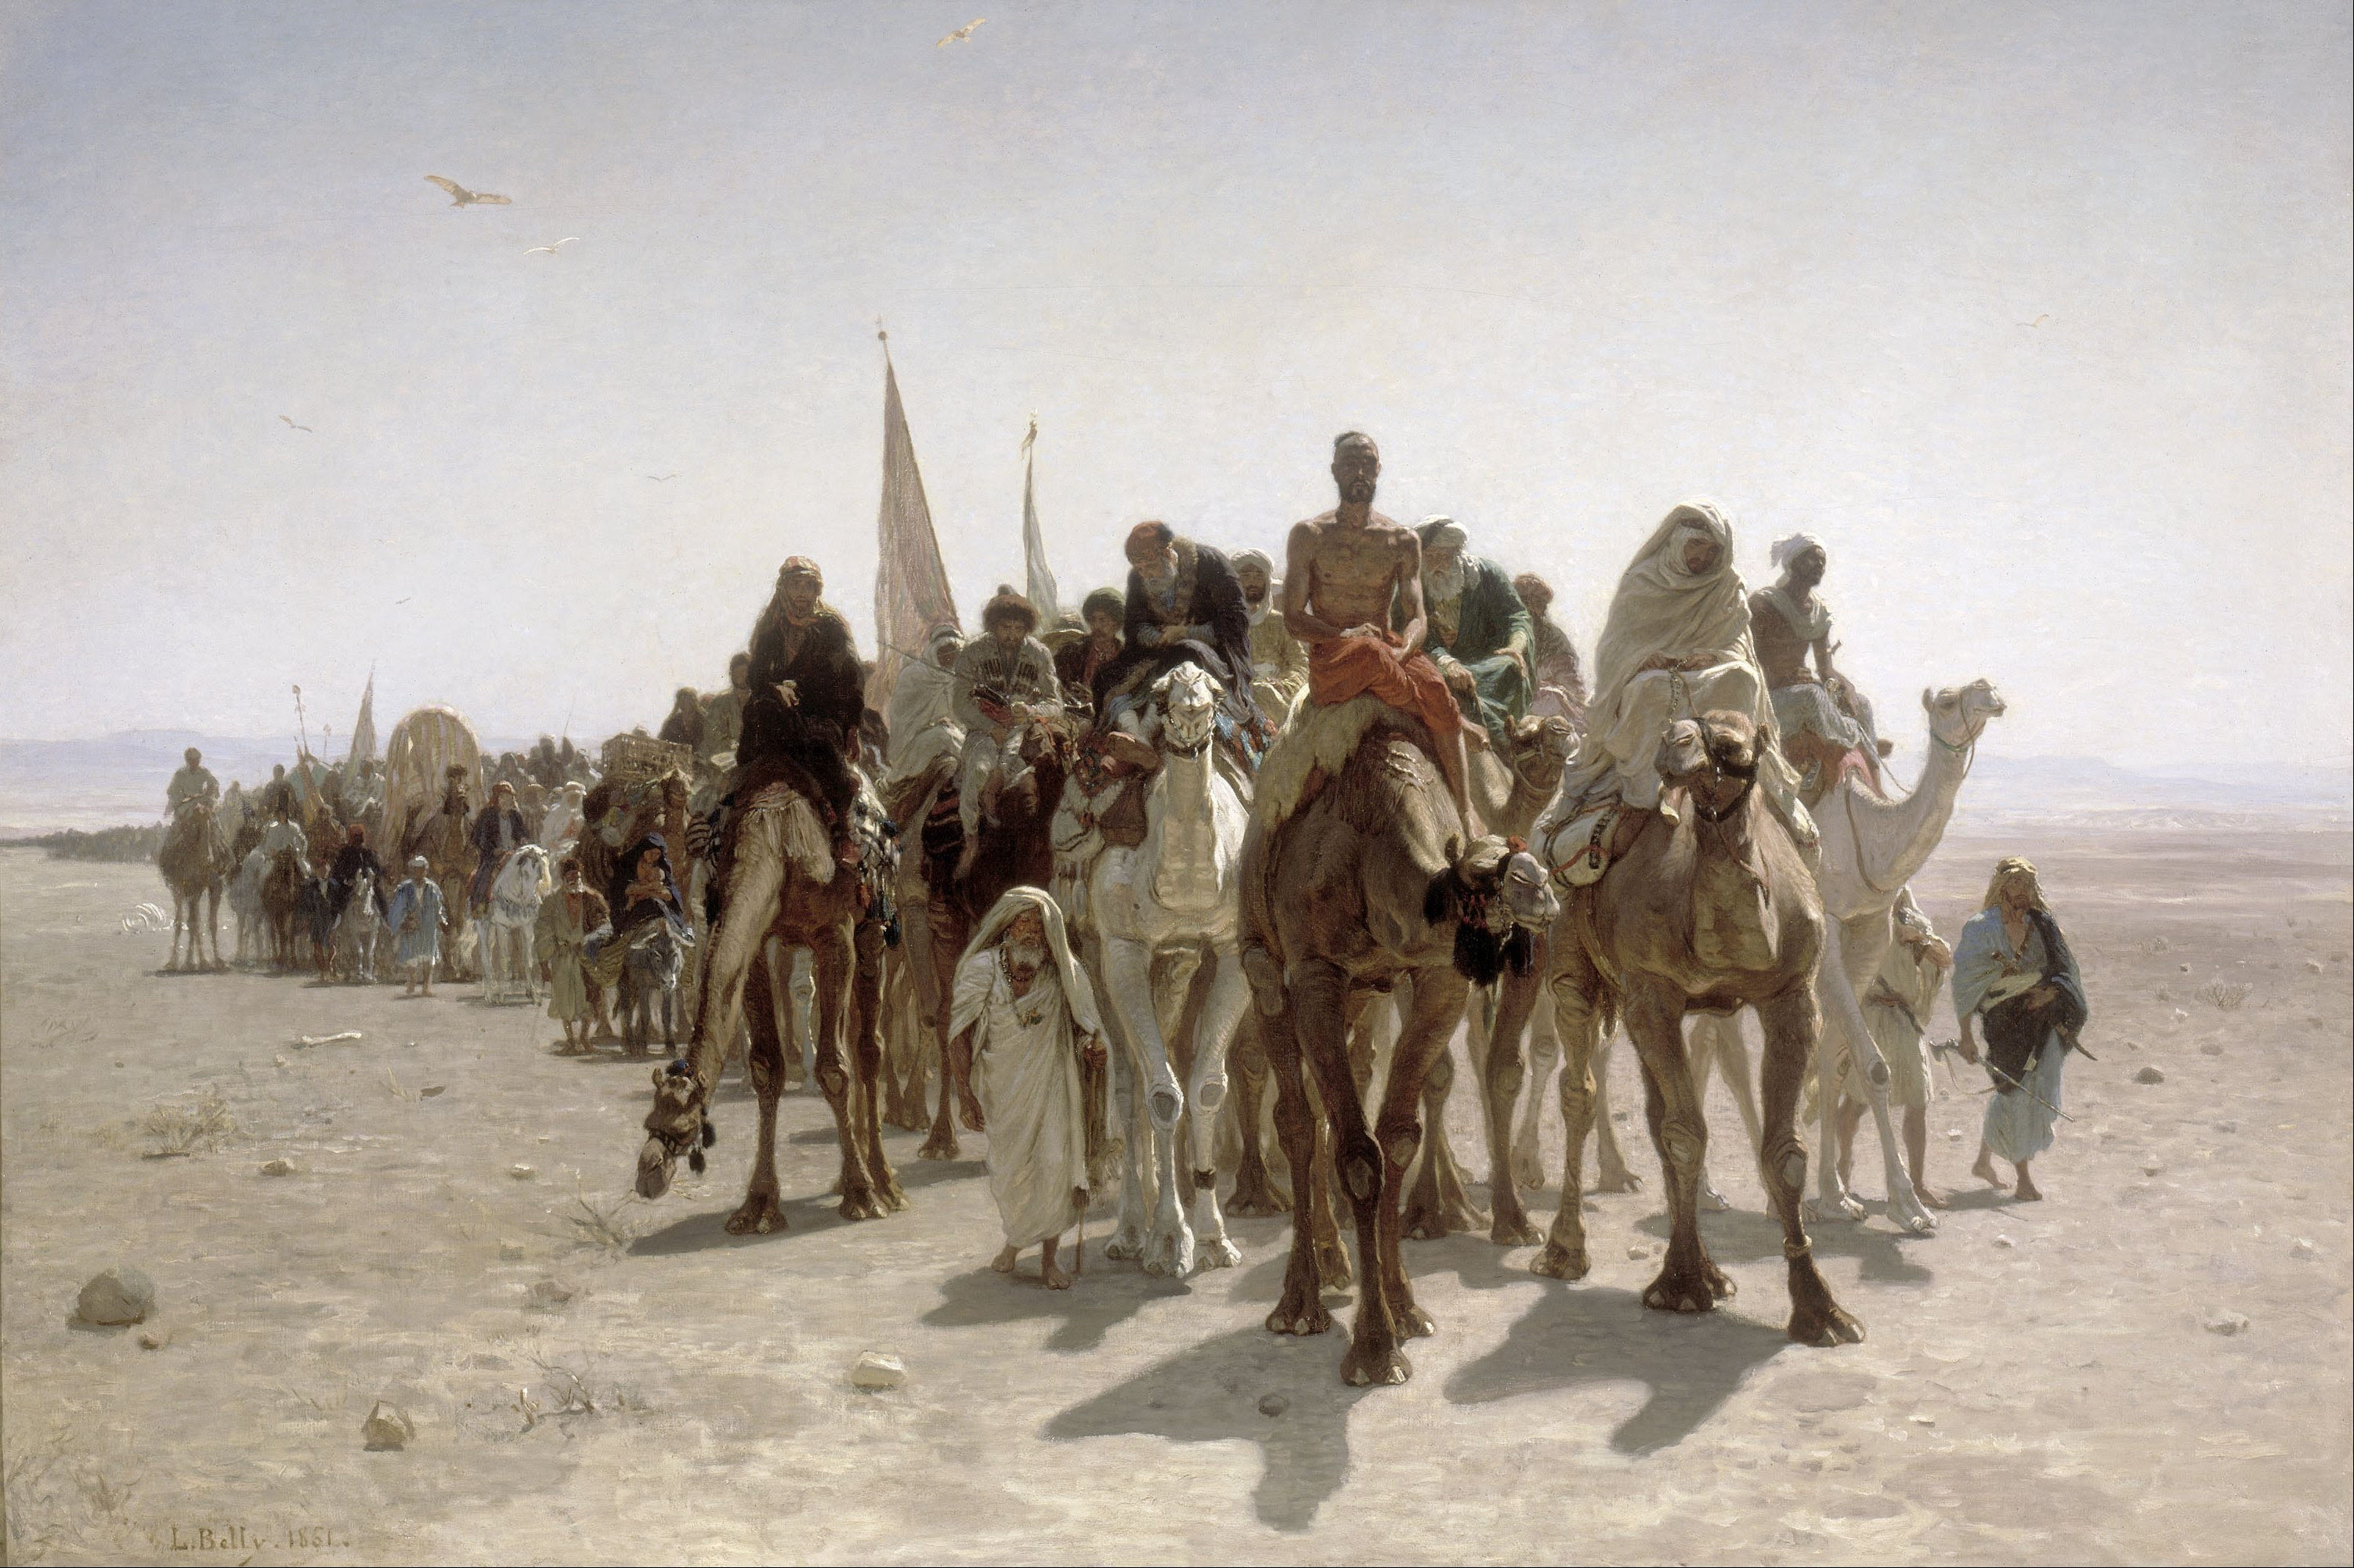 Léon_Belly_-_Pilgrims_going_to_Mecca_-_Google_Art_Project